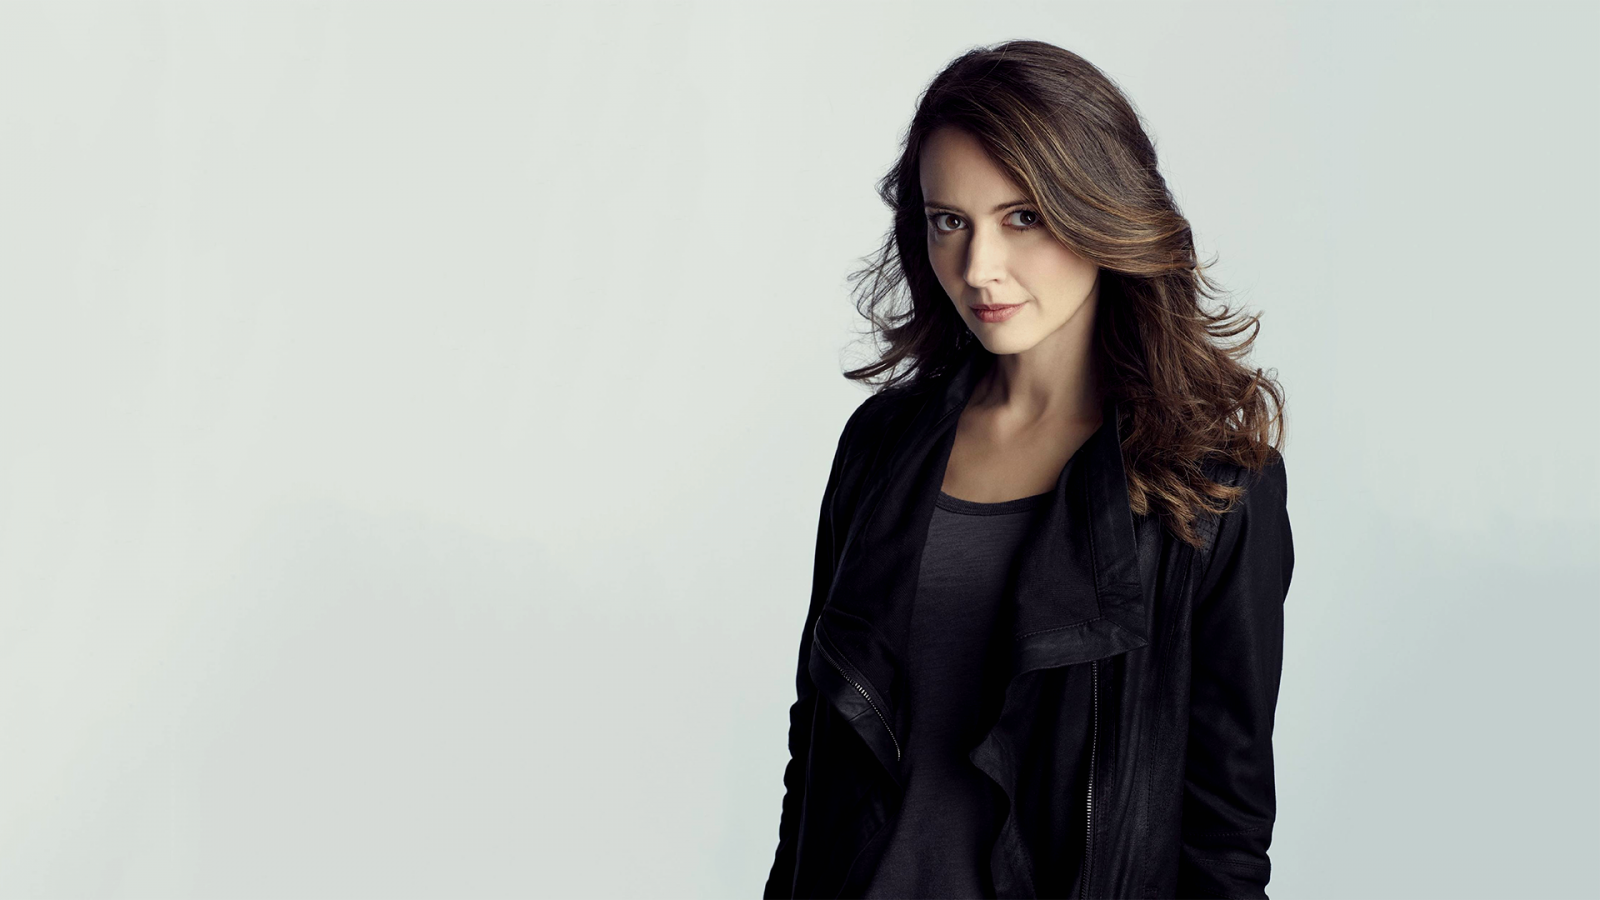 Watch Amy Acker born December 5, 1976 (age 41) video